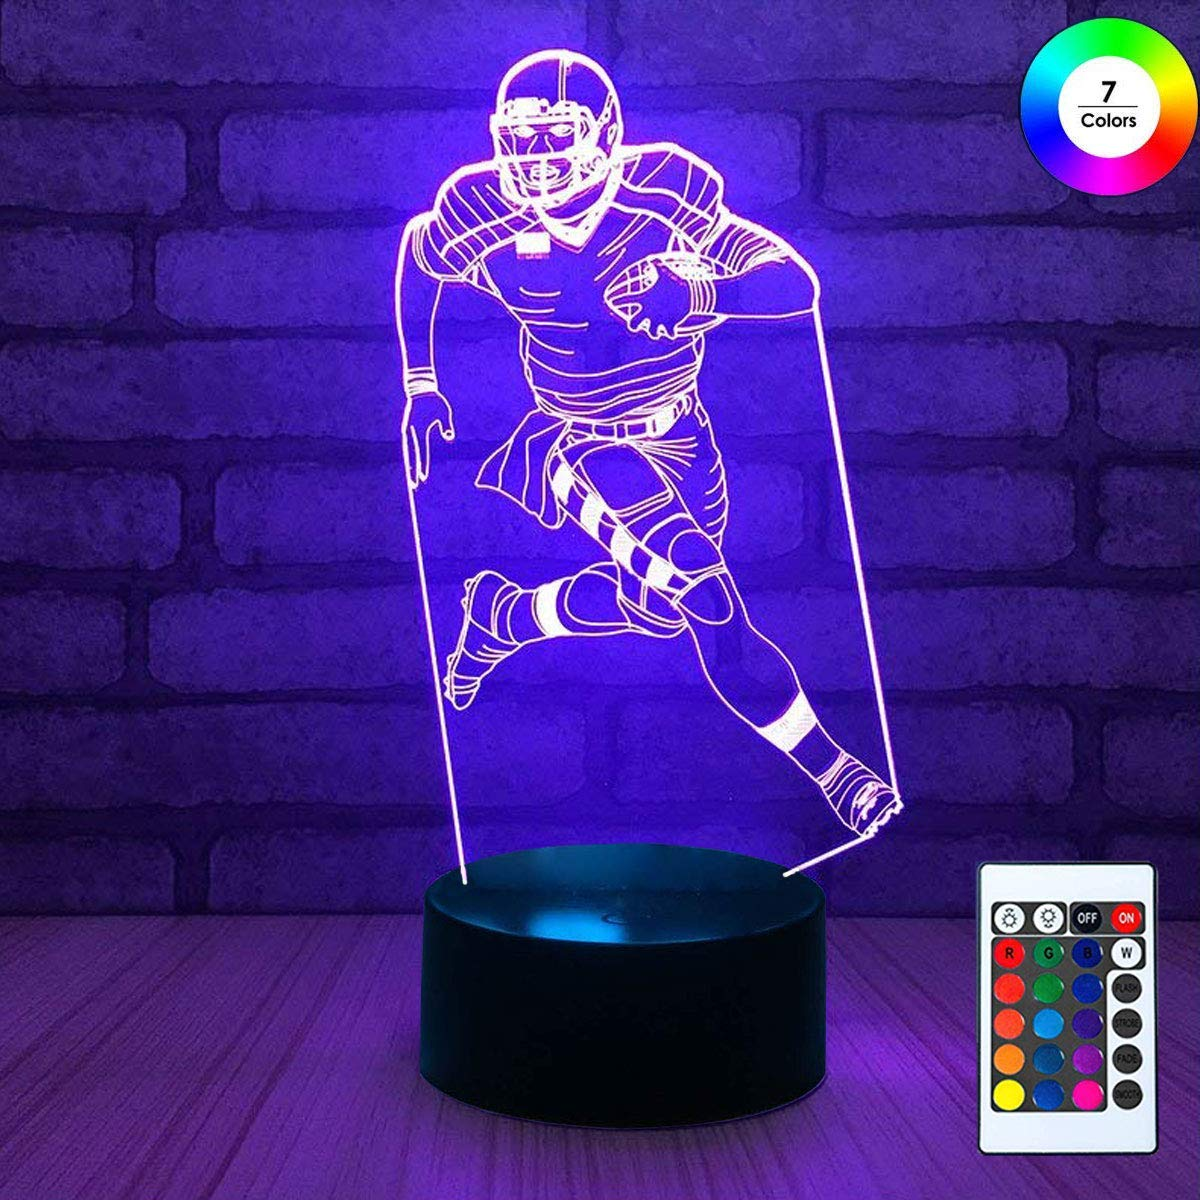 3D Remote Night Stand Light, EpicGadget Touch Control Optical Illusion Visualization LED Night Light Lamp 7 Colors Changing Remote Control Night Light Lamp Stand (Football Player)